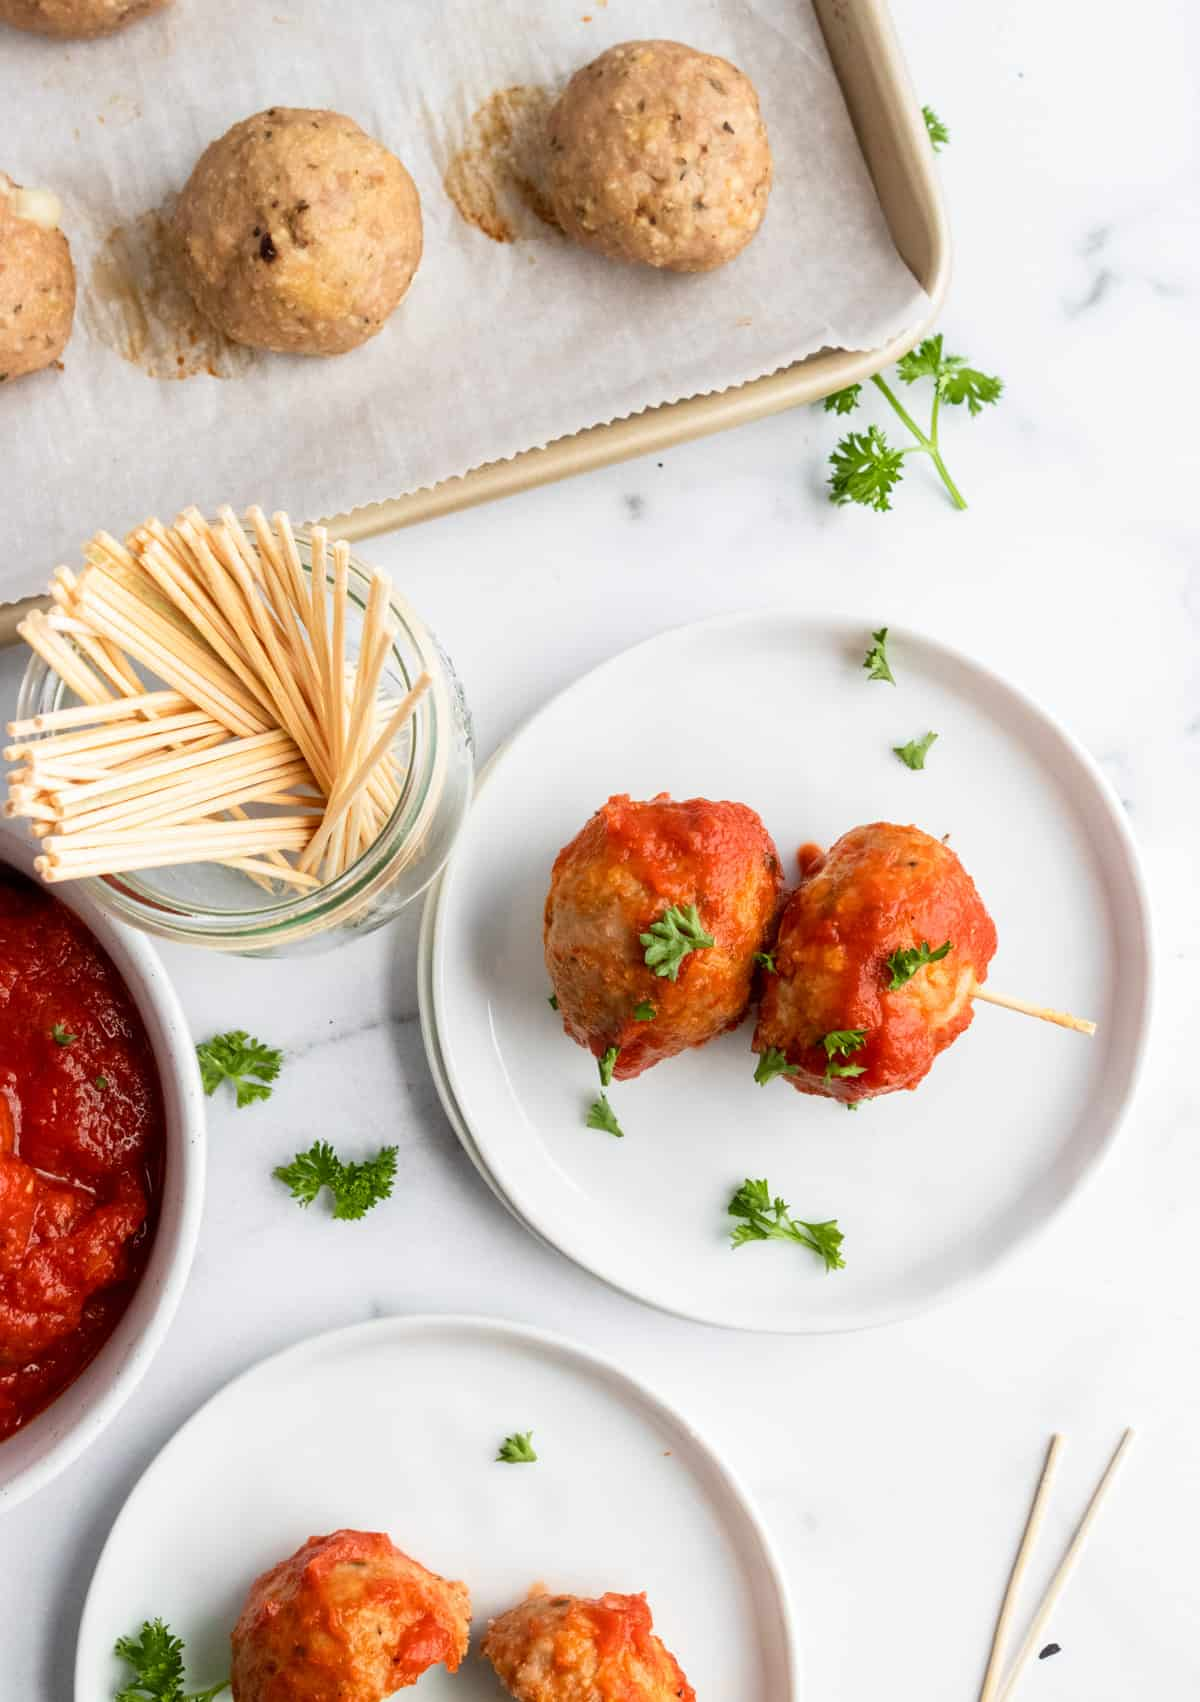 Meatballs on plate with toothpicks.